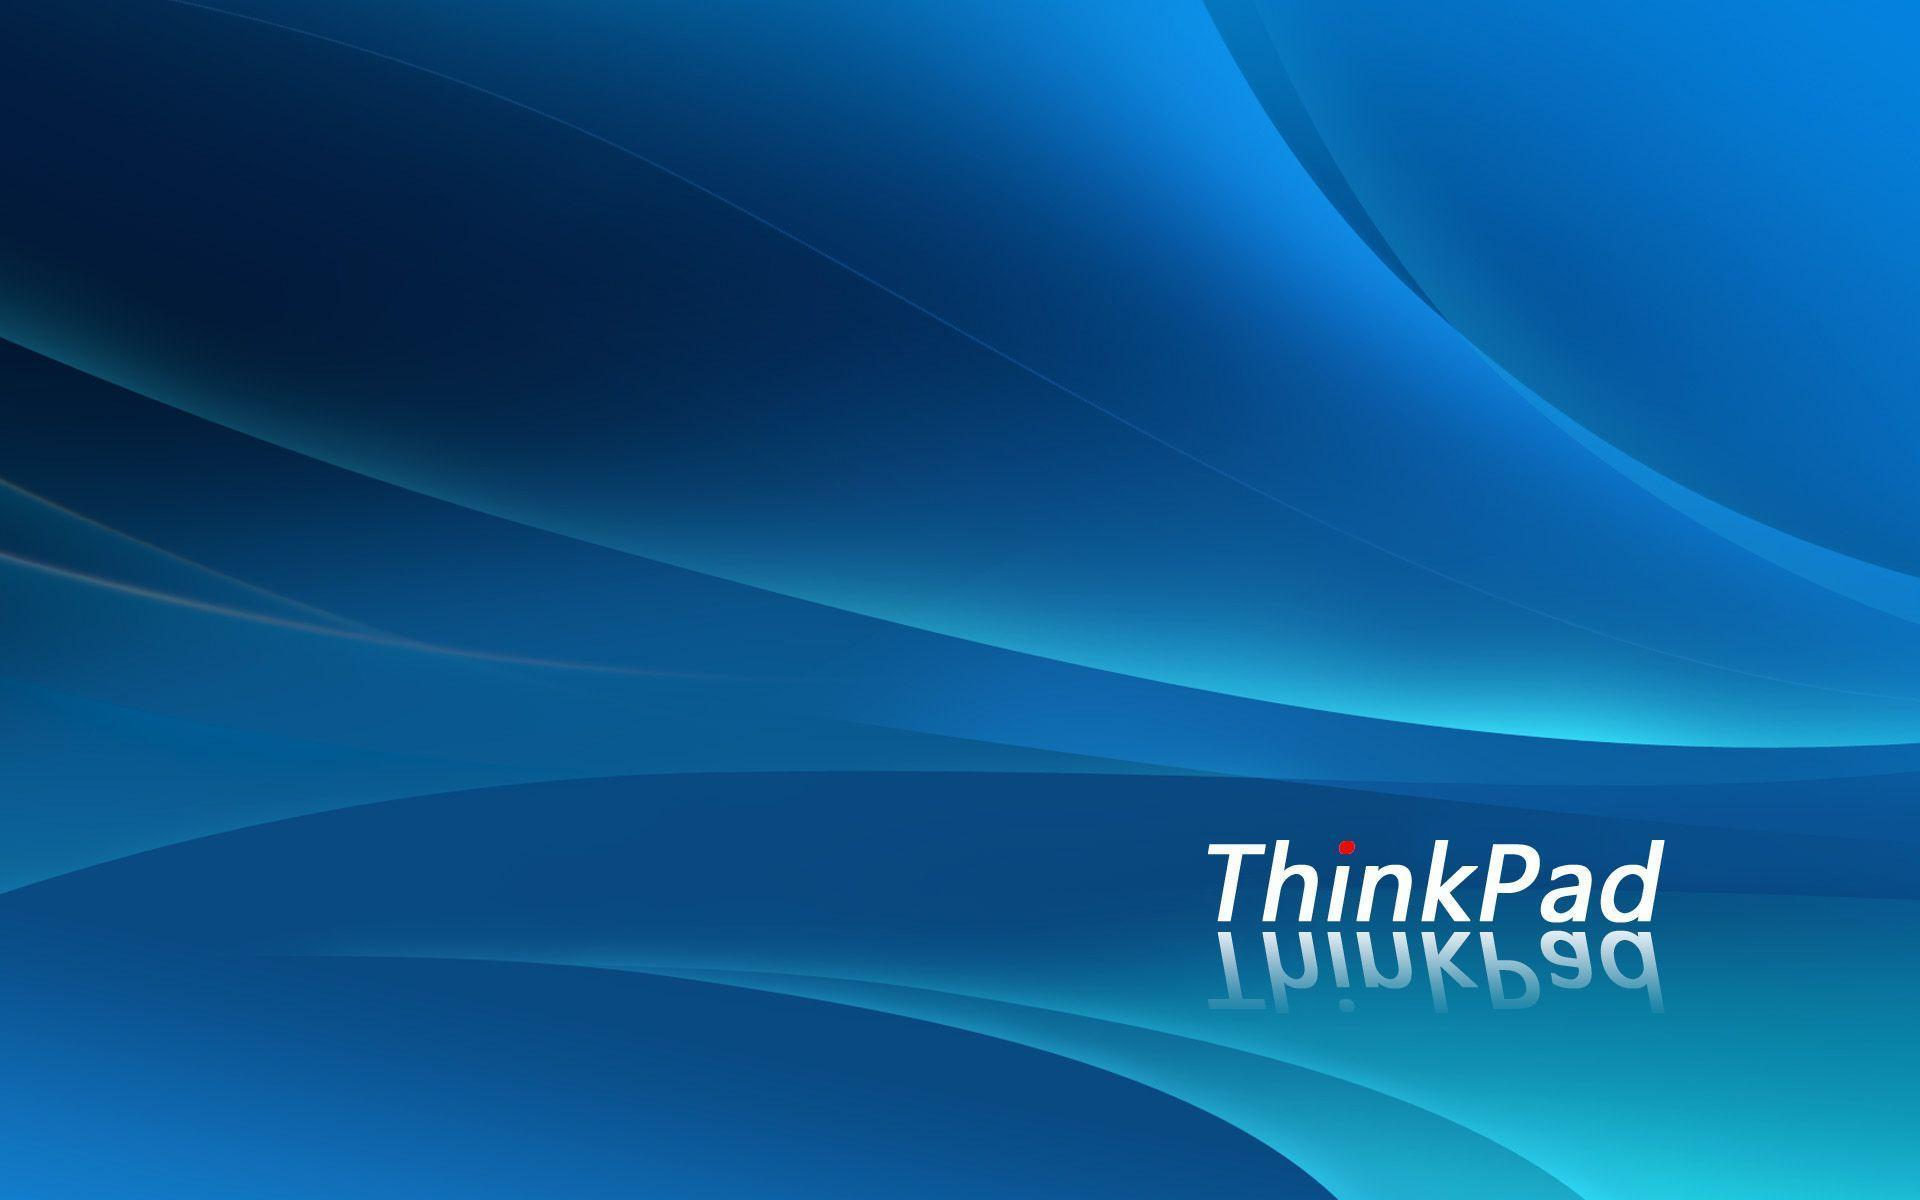 1280x800 wallpaper thinkpad - photo #15